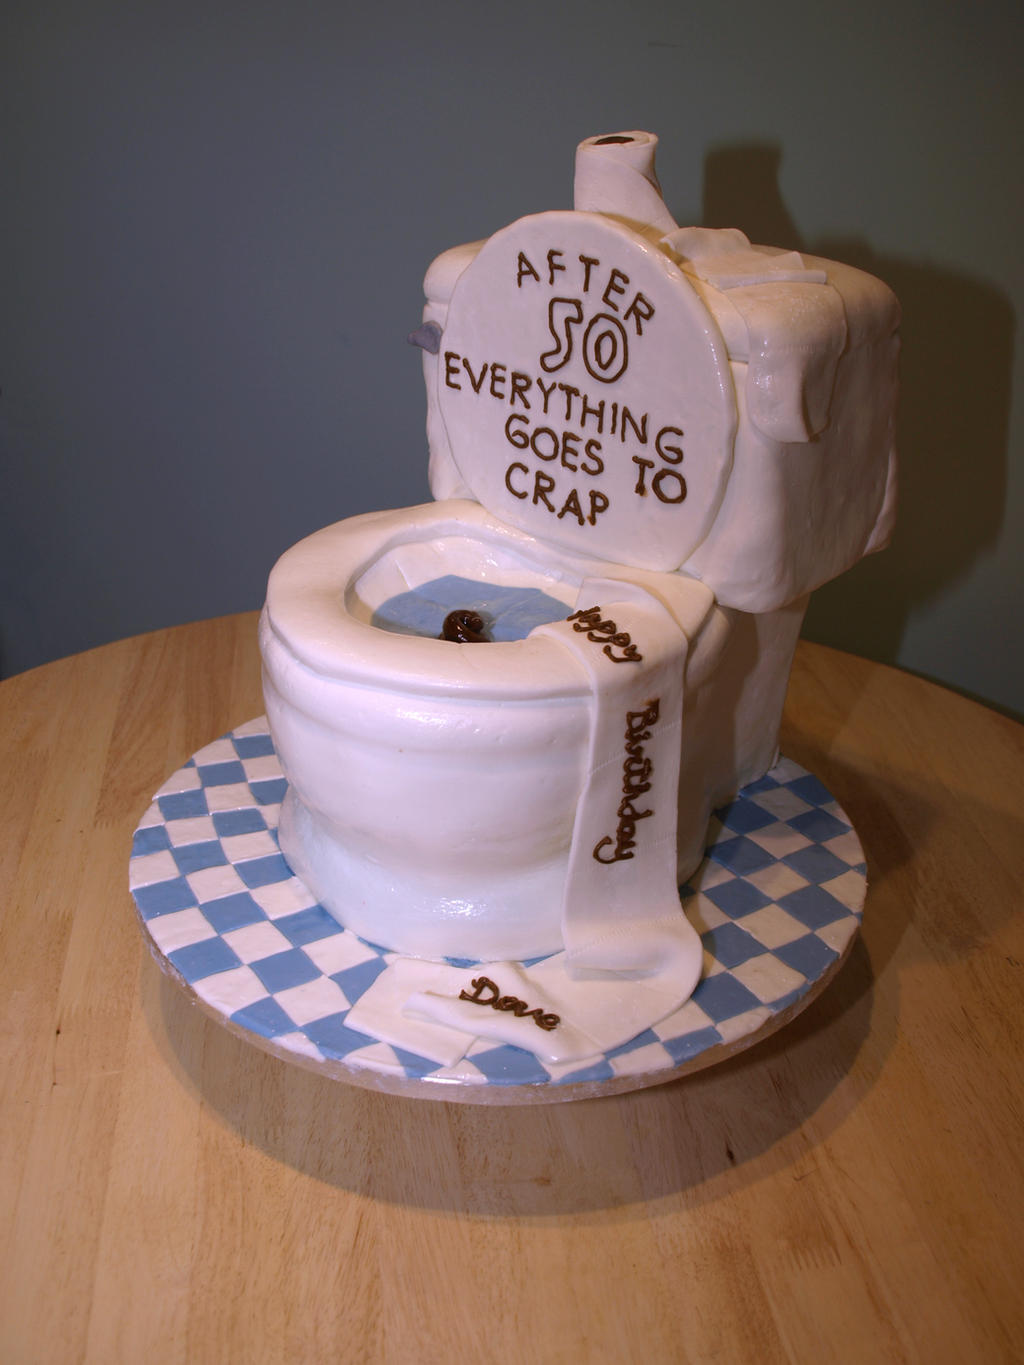 Toilet 50th Birthday Cake by reenaj on DeviantArt